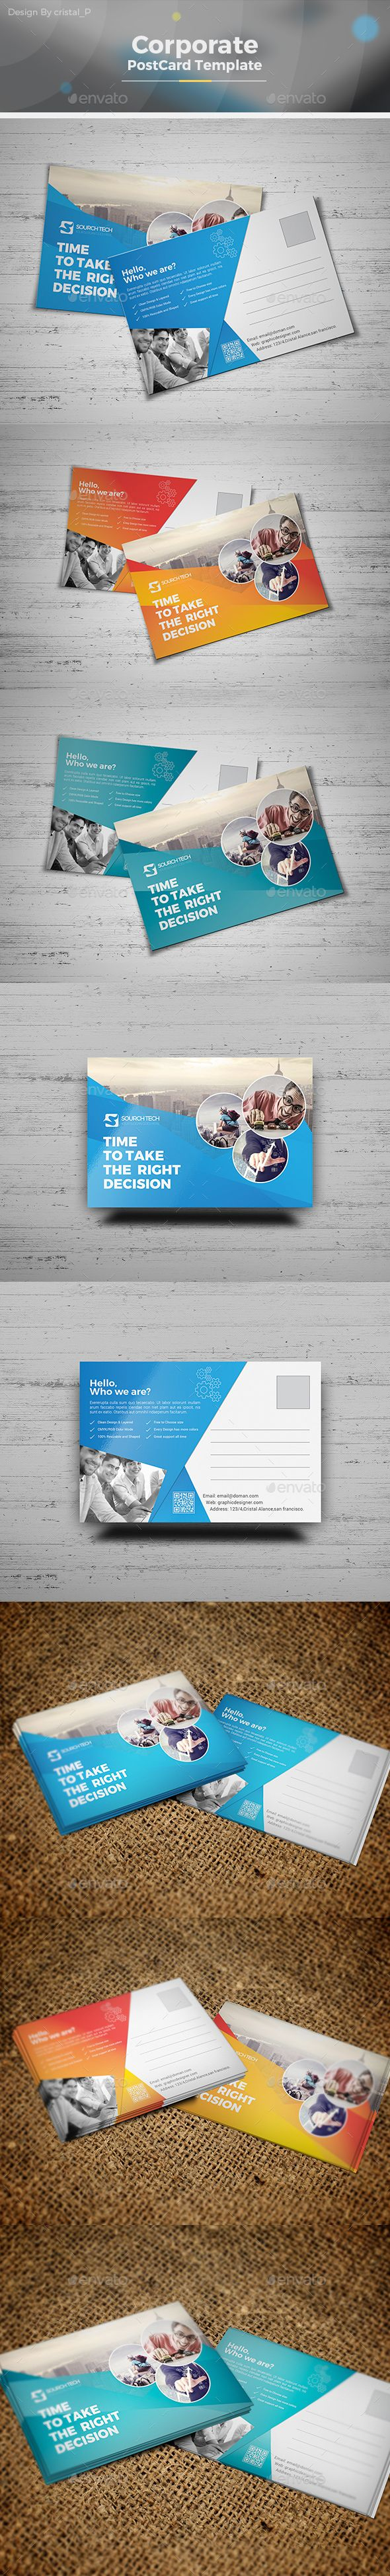 Postcard Template - #Cards & Invites Print #Templates Download here: https://graphicriver.net/item/postcard-template/19541502?ref=alena994